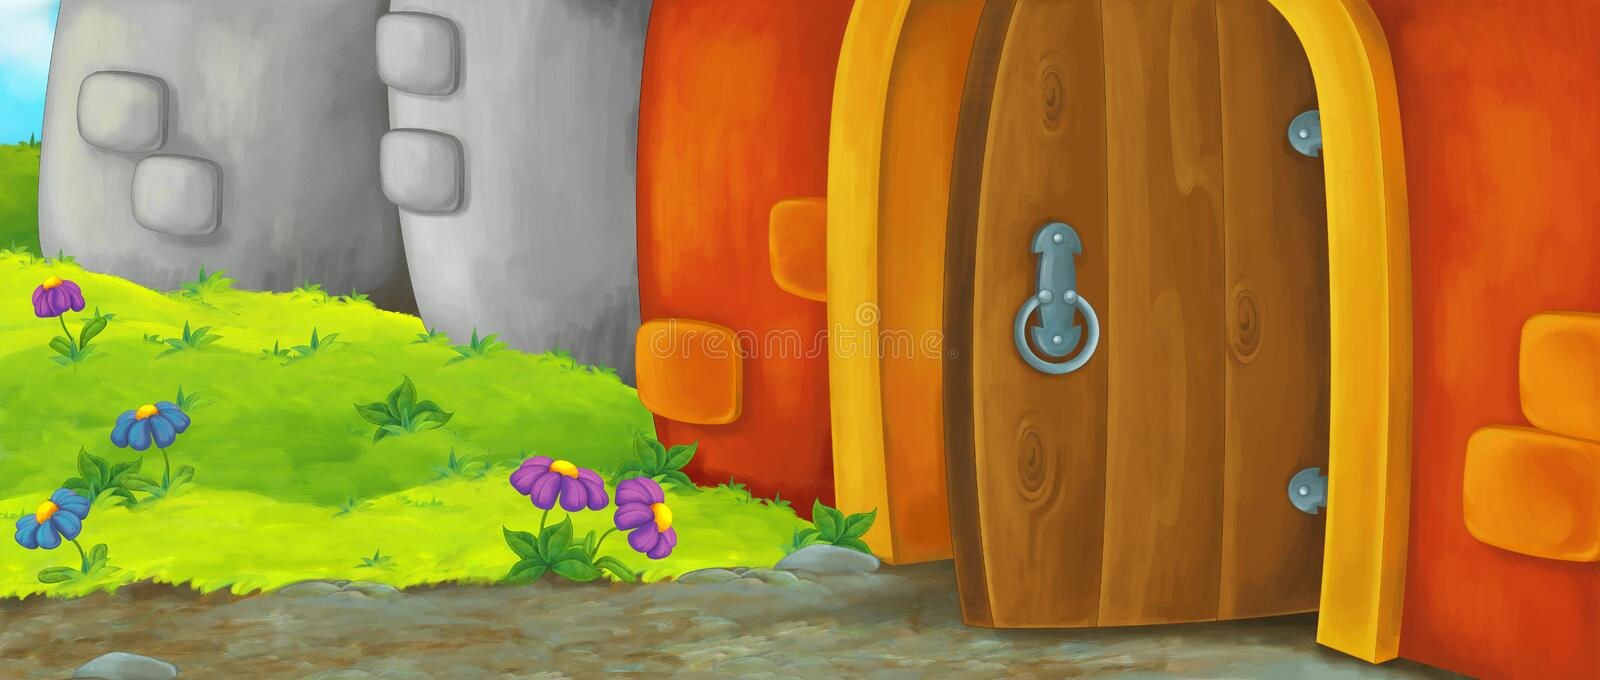 Cartoon happy scene of an old style entrance - stage for different usage vector illustration